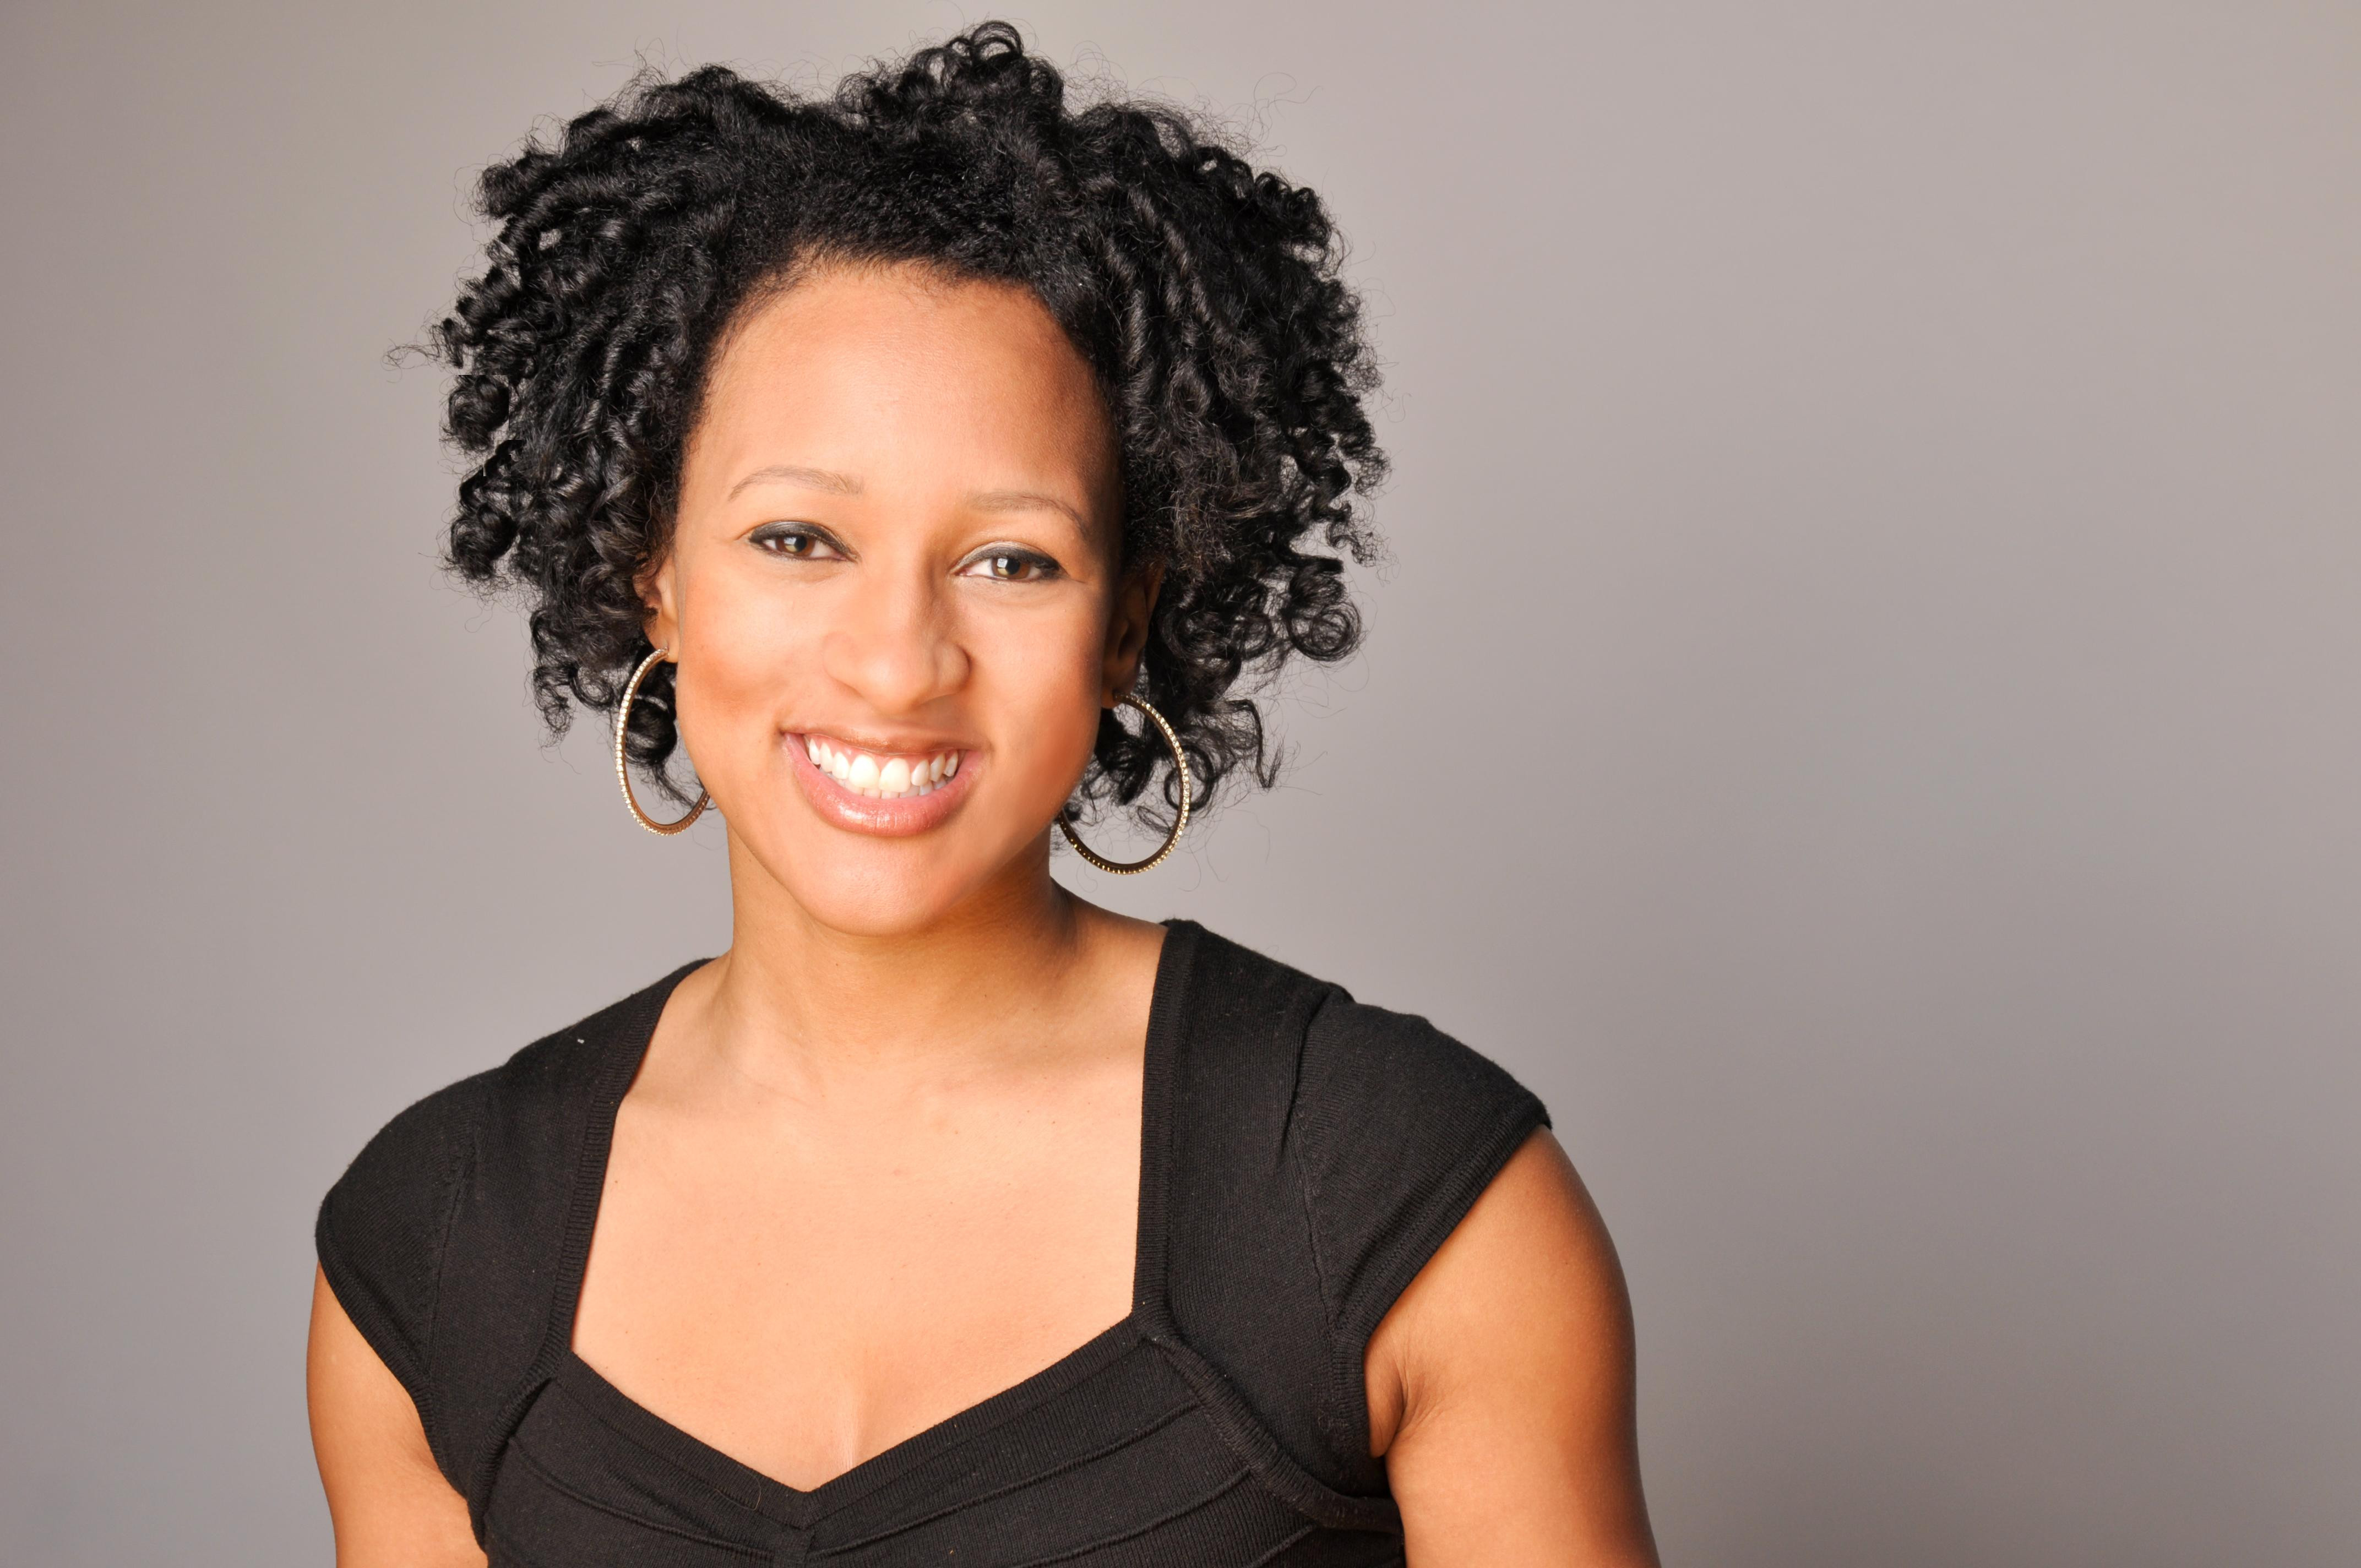 Natural Hairstyles For Black Women  30 Impressive Short Natural Hairstyles For Black Women